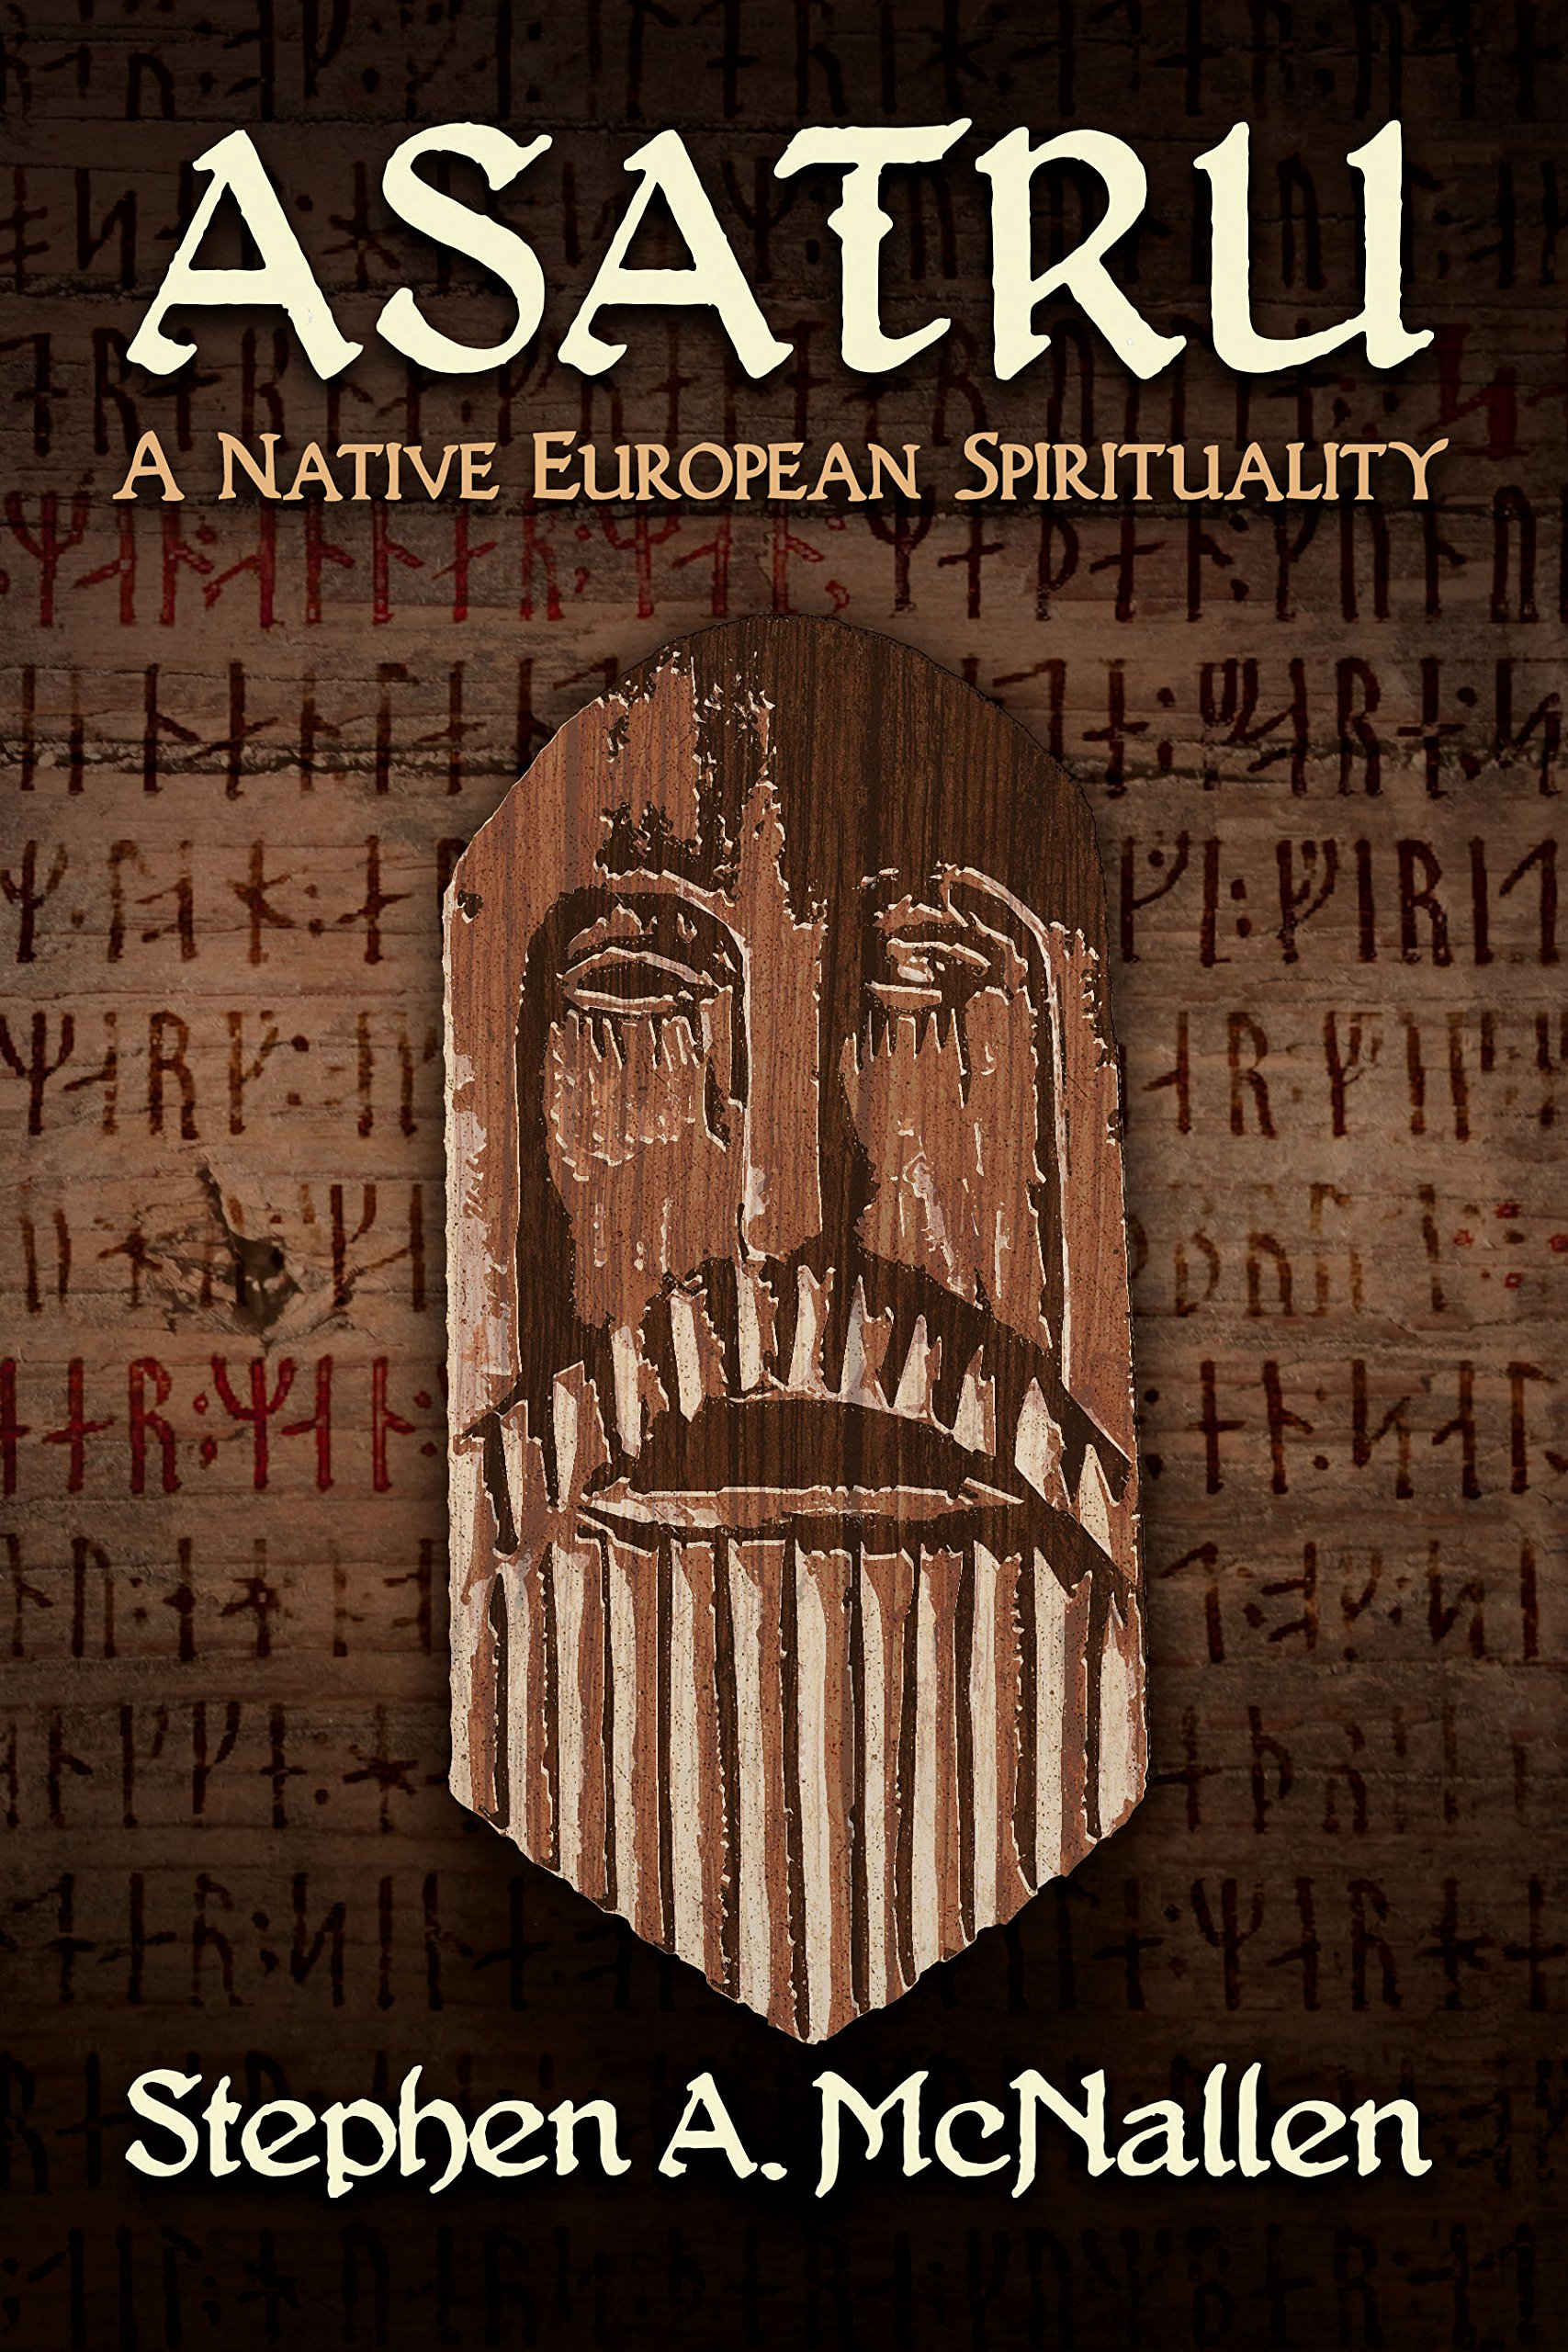 Asatru a native european spirituality stephen a mcnallen asatru a native european spirituality stephen a mcnallen 9780972029254 amazon books fandeluxe Image collections